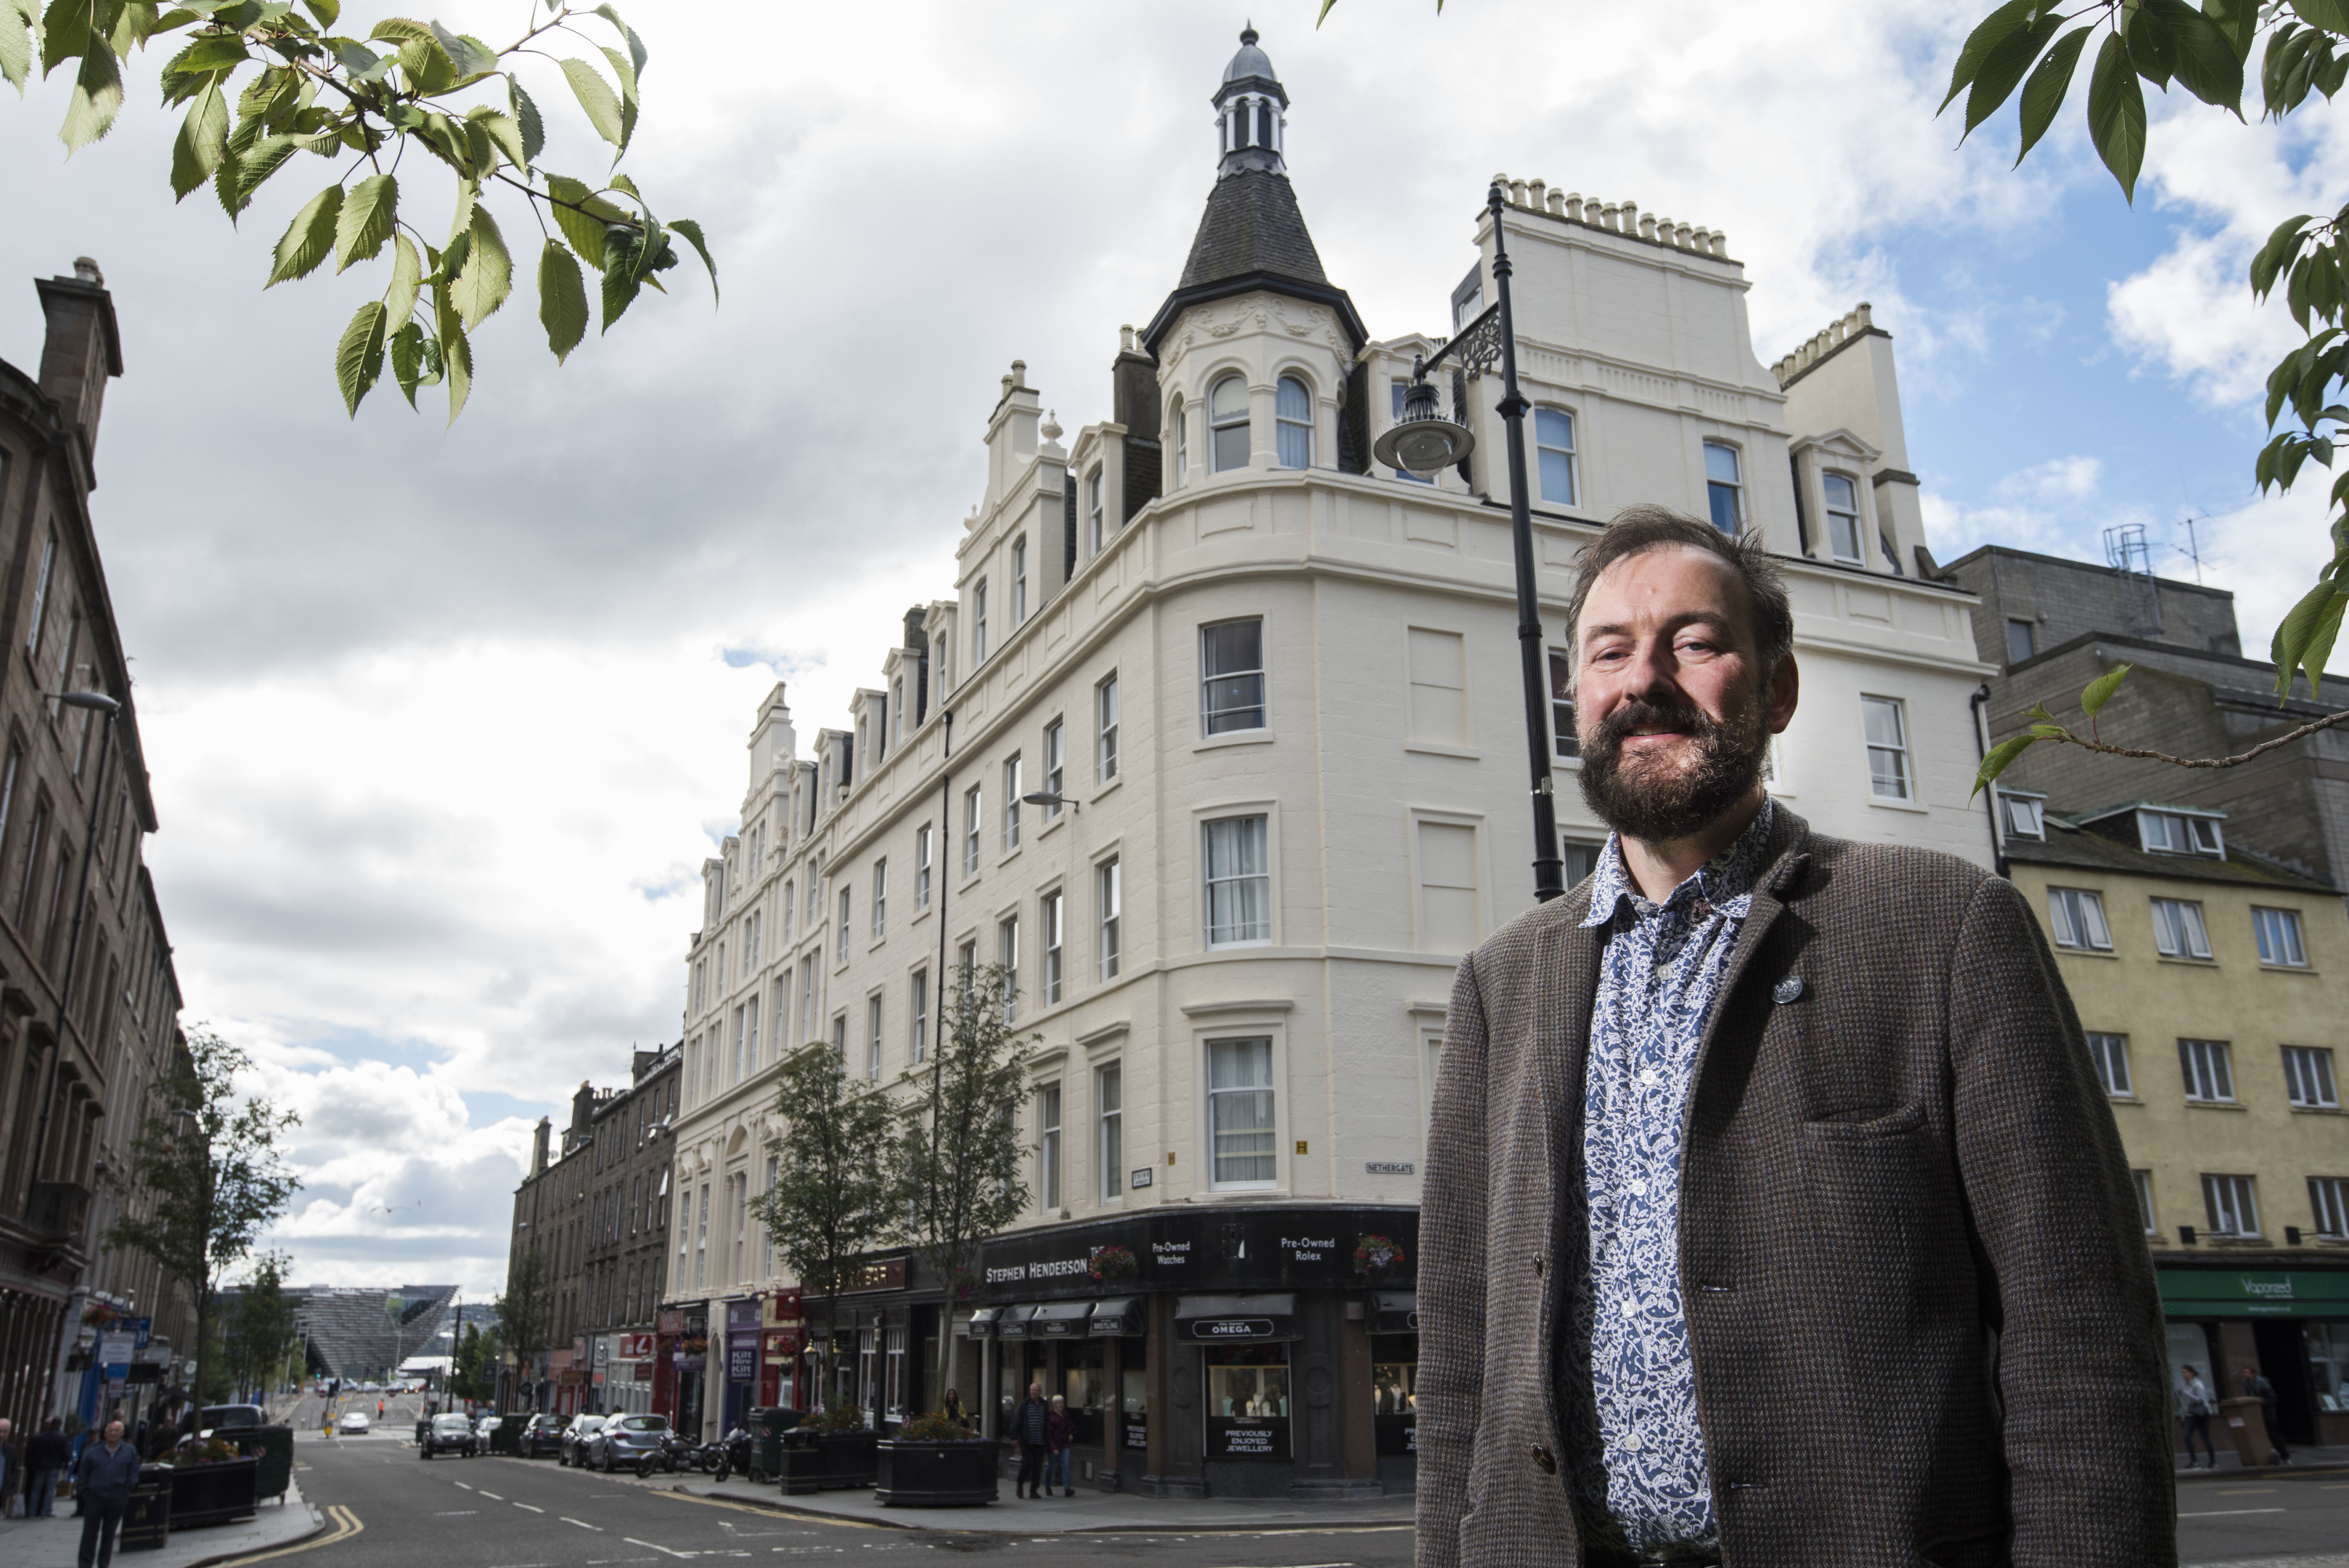 The trust has helped restore some of Dundee's most notable buildings.